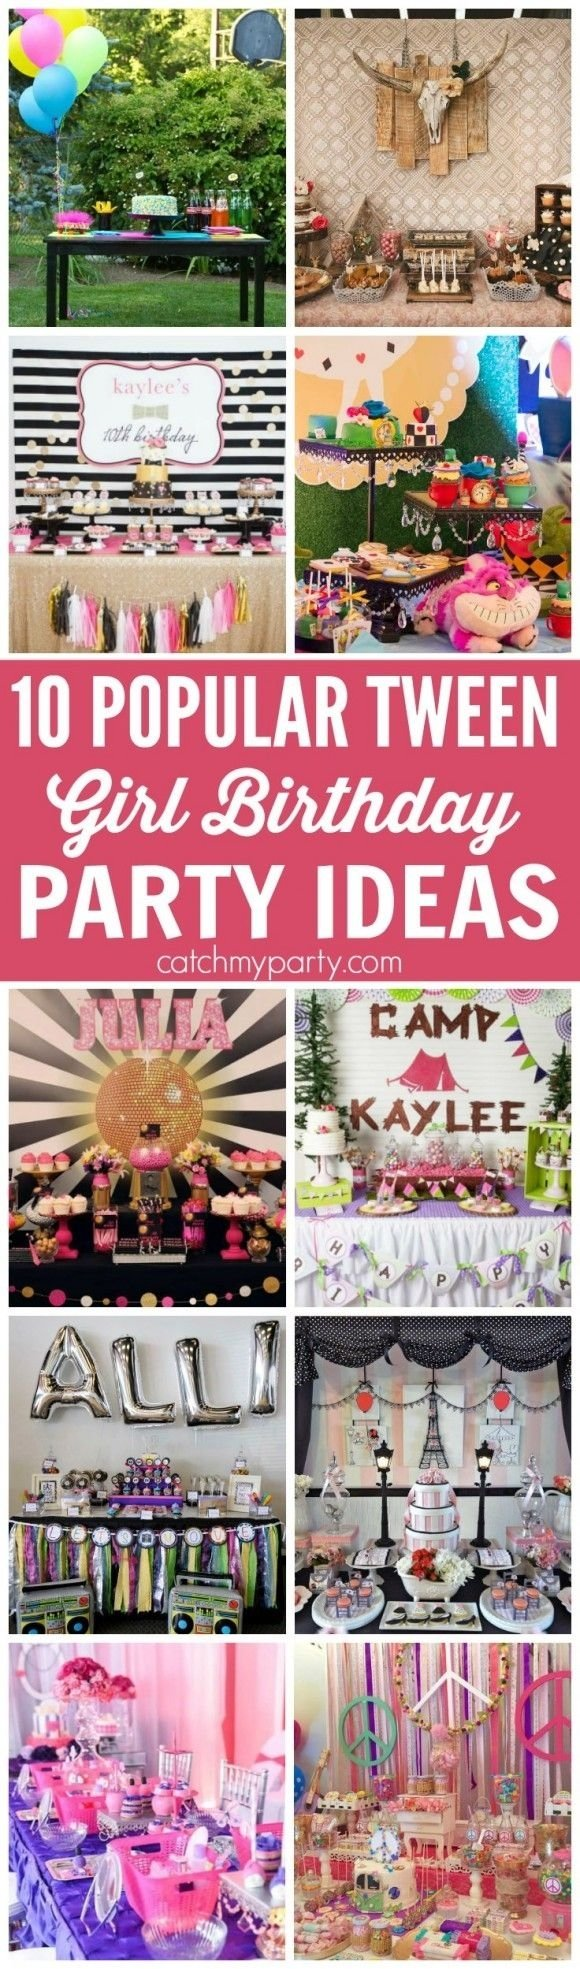 10 Elegant Fun Teenage Birthday Party Ideas 5 ideas for an epic indoor movie party at your house indoor movie 1 2021